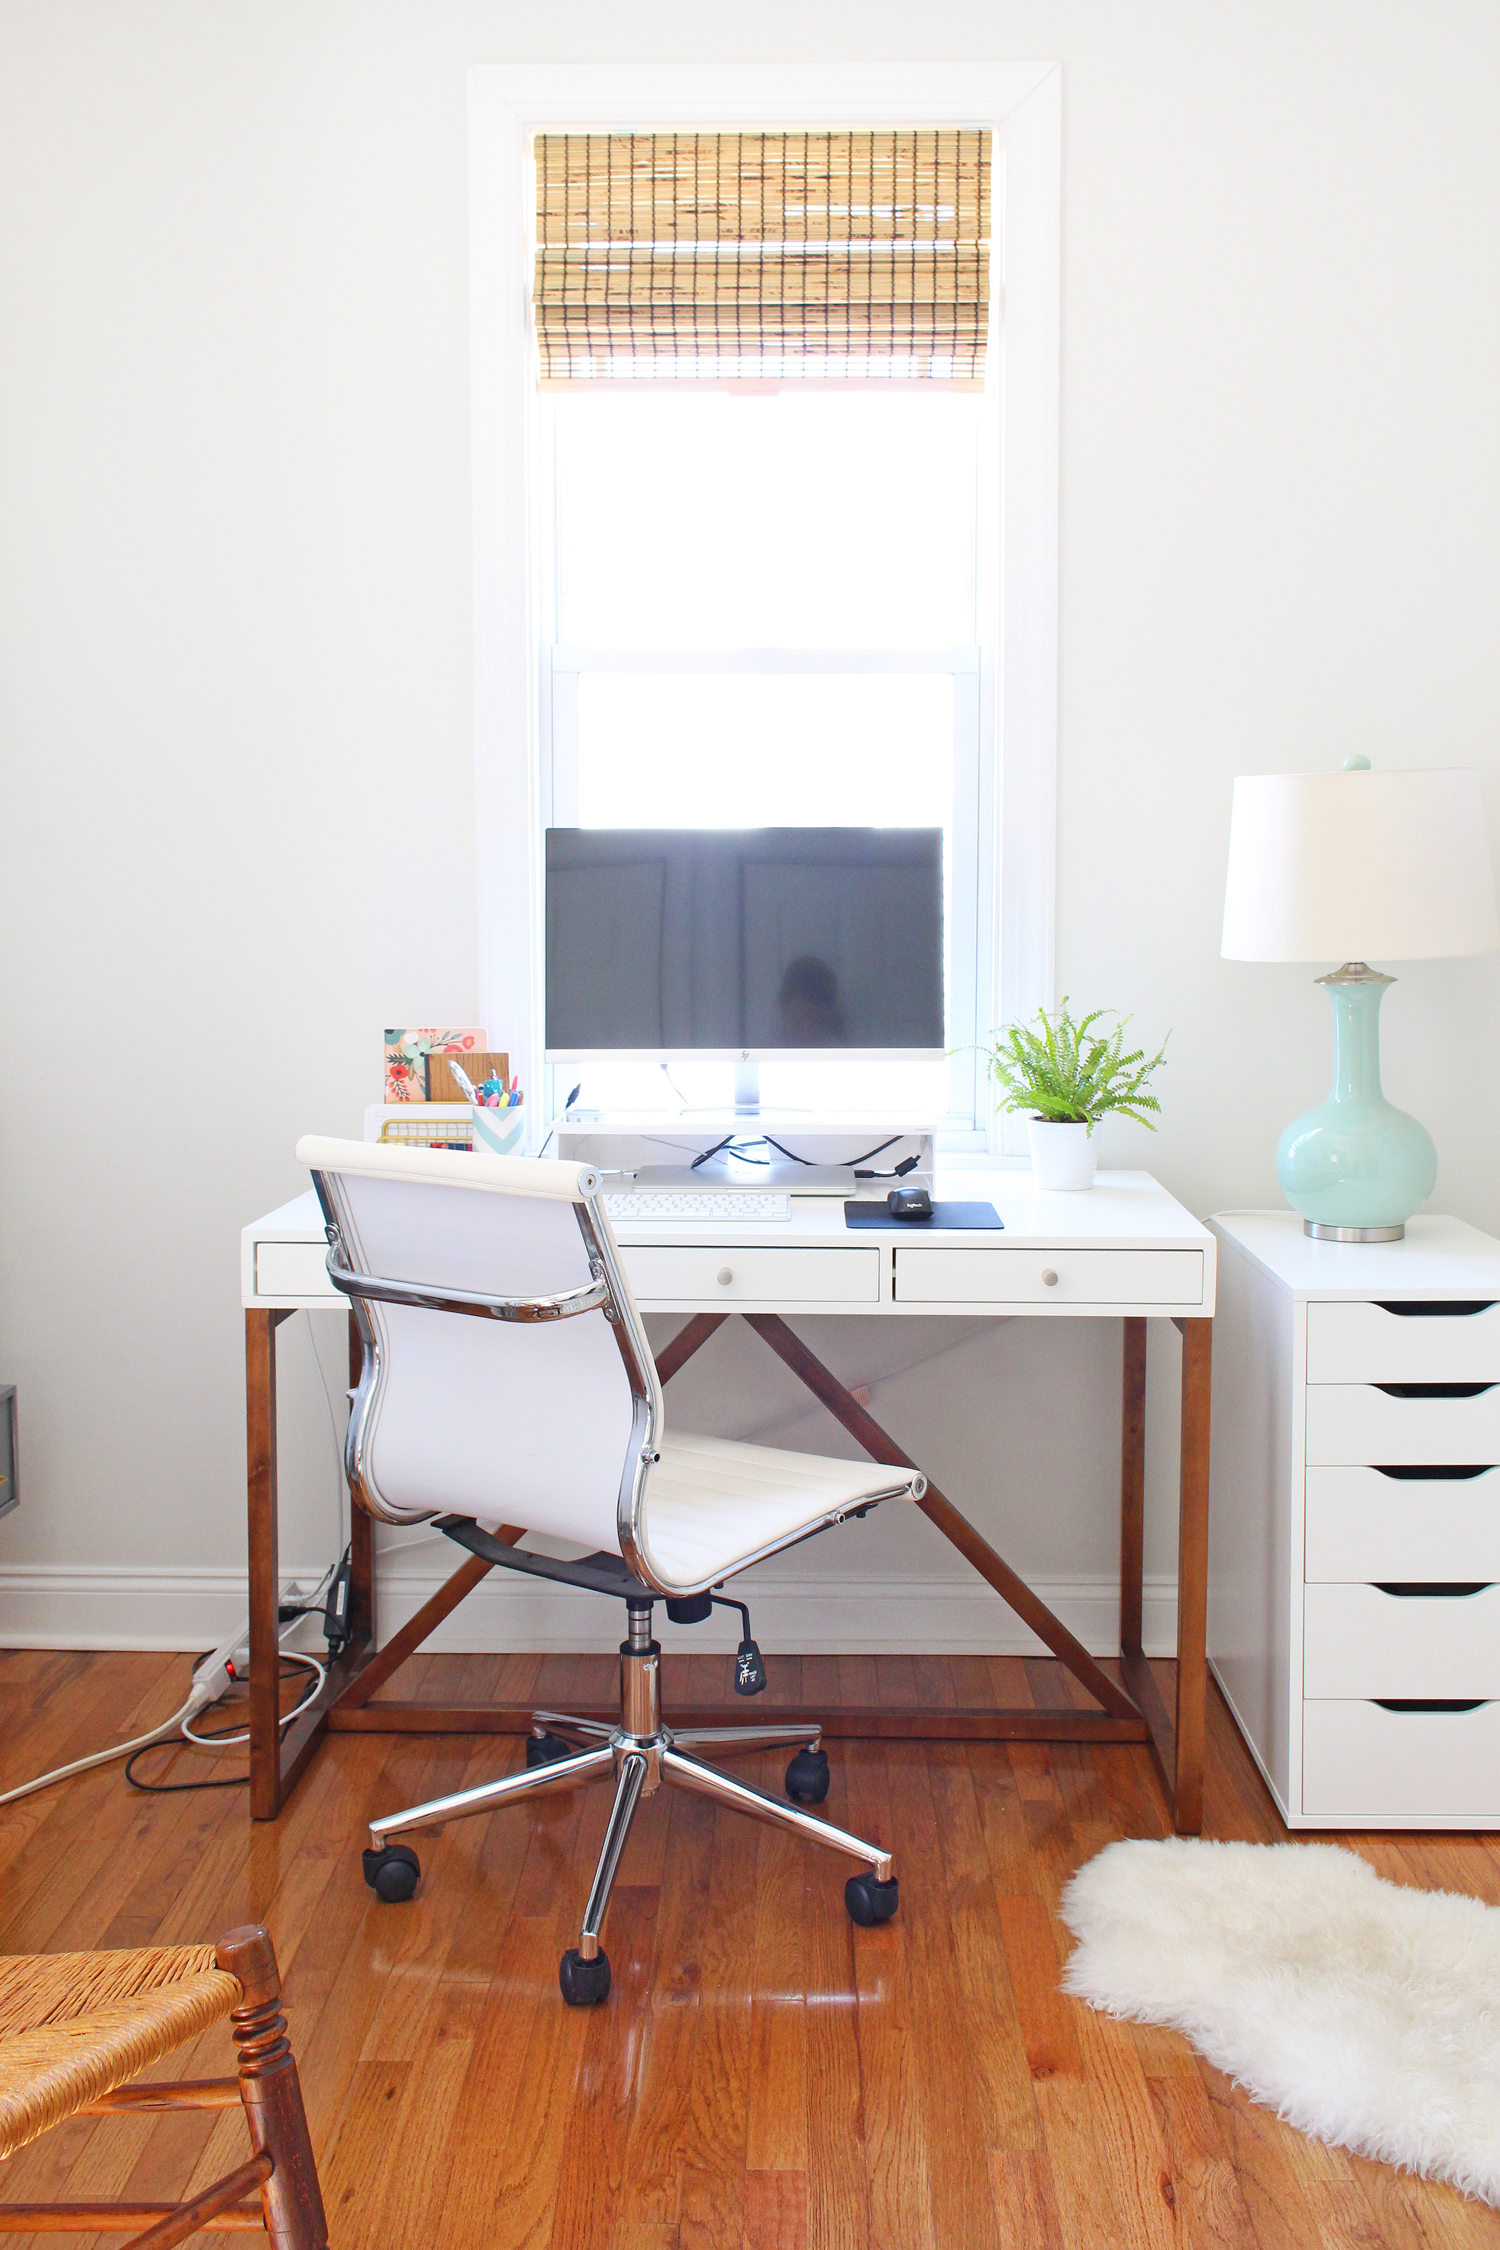 Workspace progress for my One Room Challenge home office makeover.